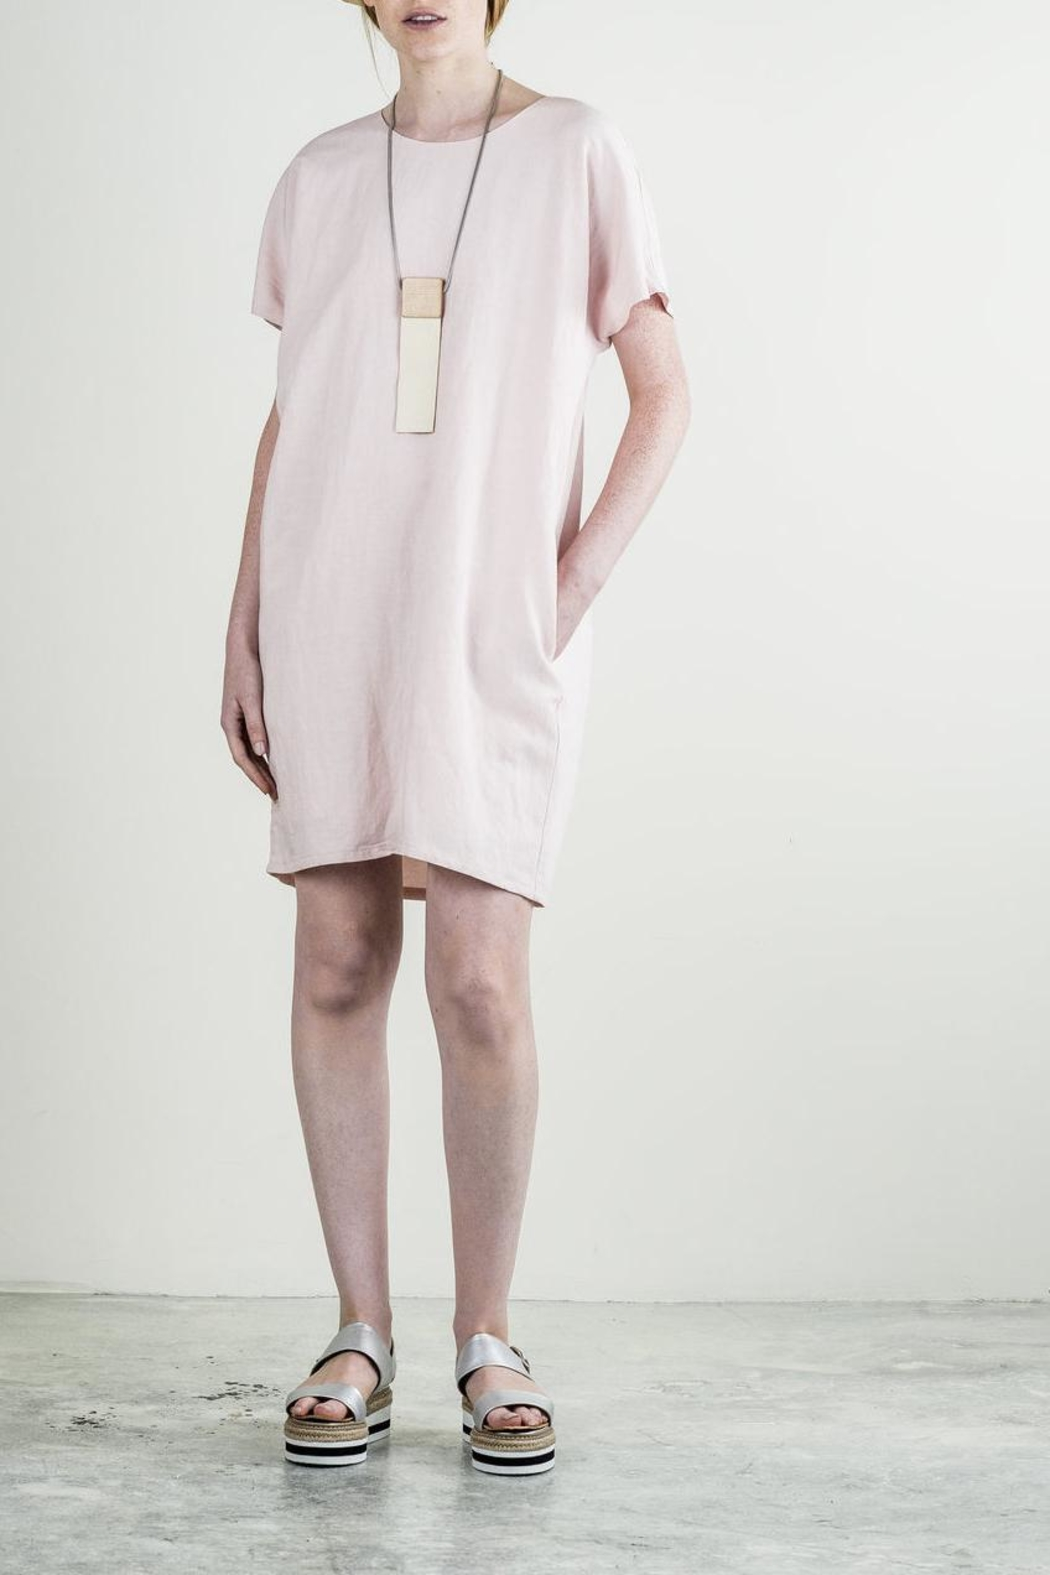 Bodybag by Jude Pink Tunic Dress - Main Image